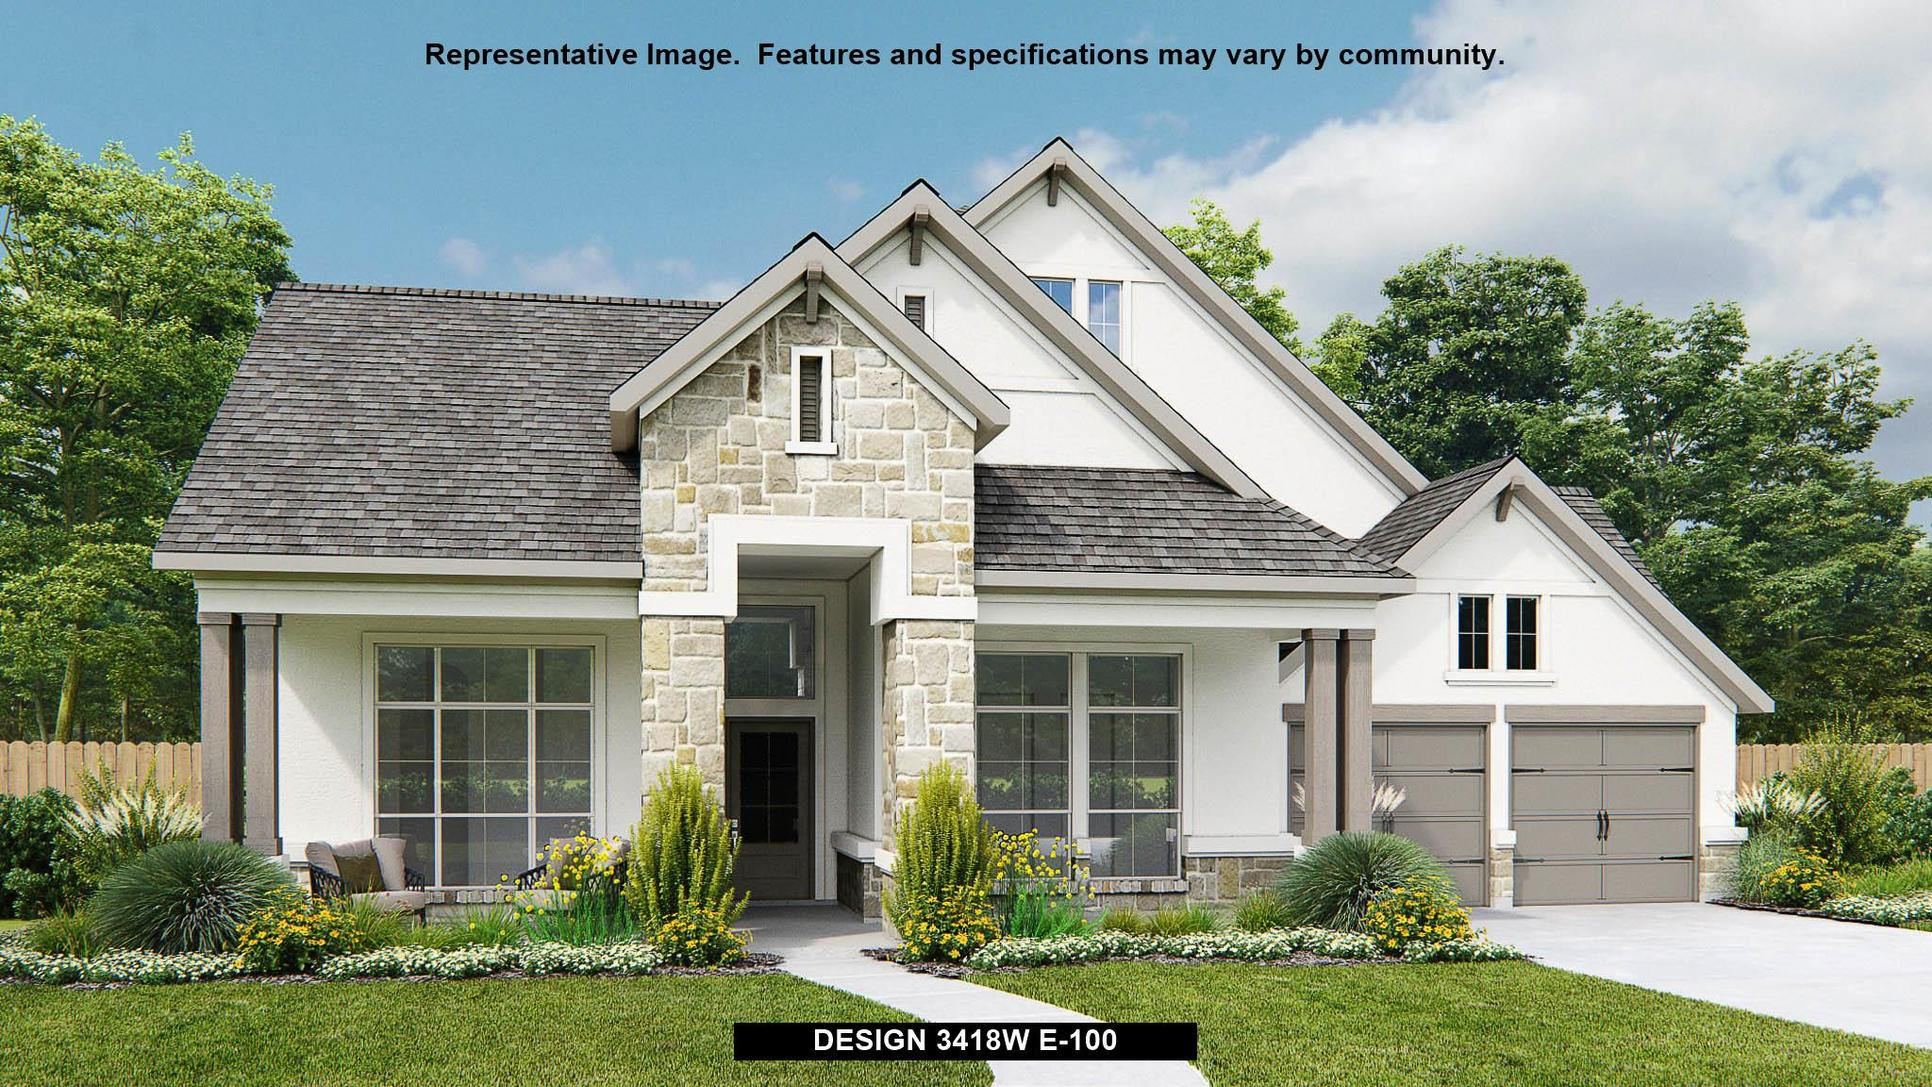 Plan 3418W:Representative photo.  Features and specifications may vary by community.